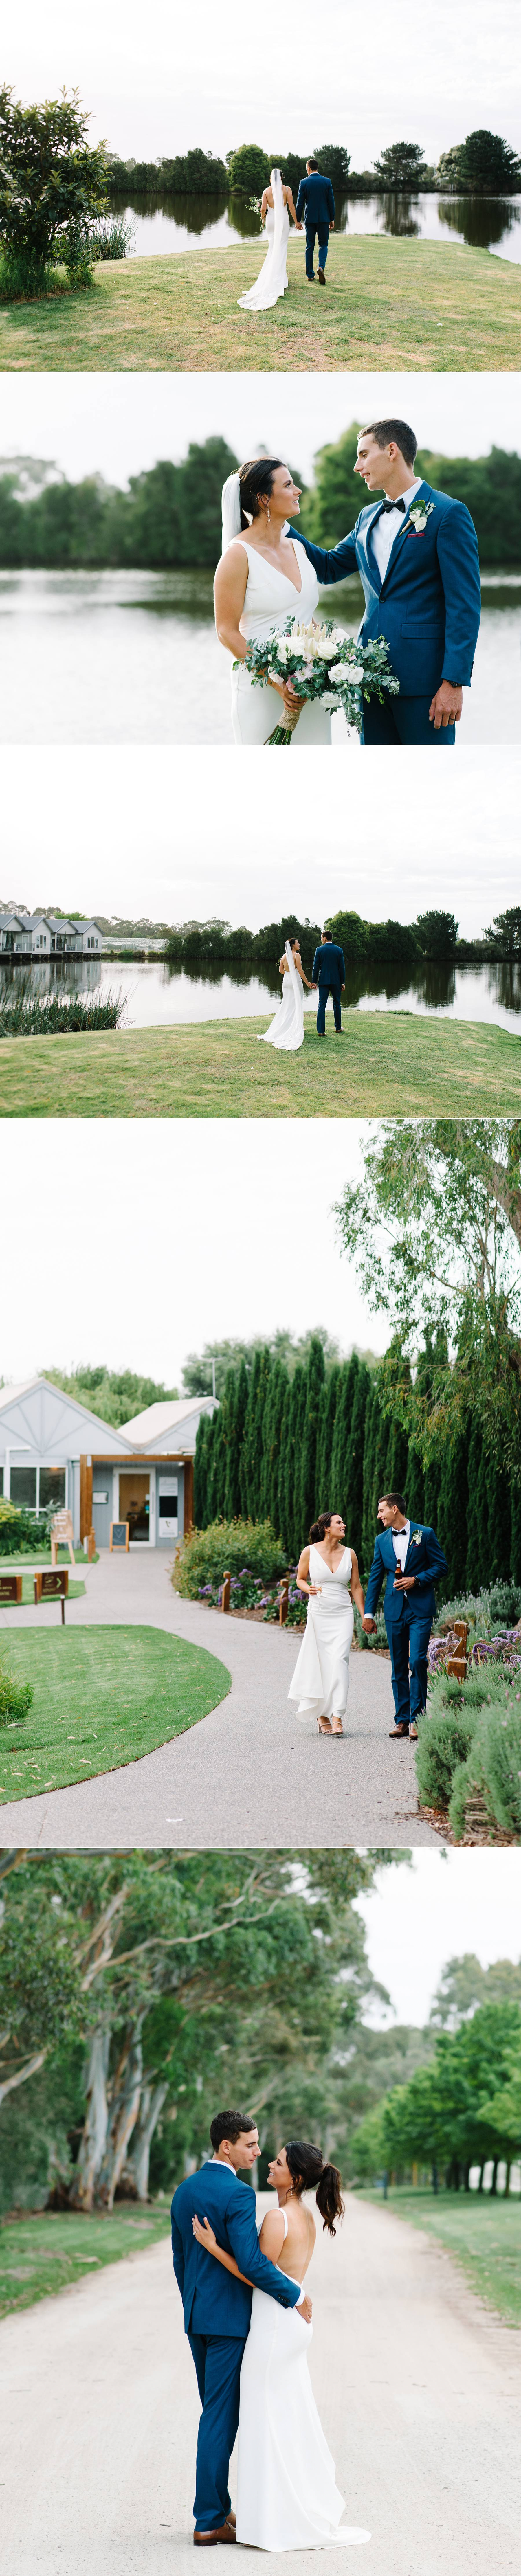 Bride and groom photography at Stillwater at Crittenden wedding by Michelle Pragt